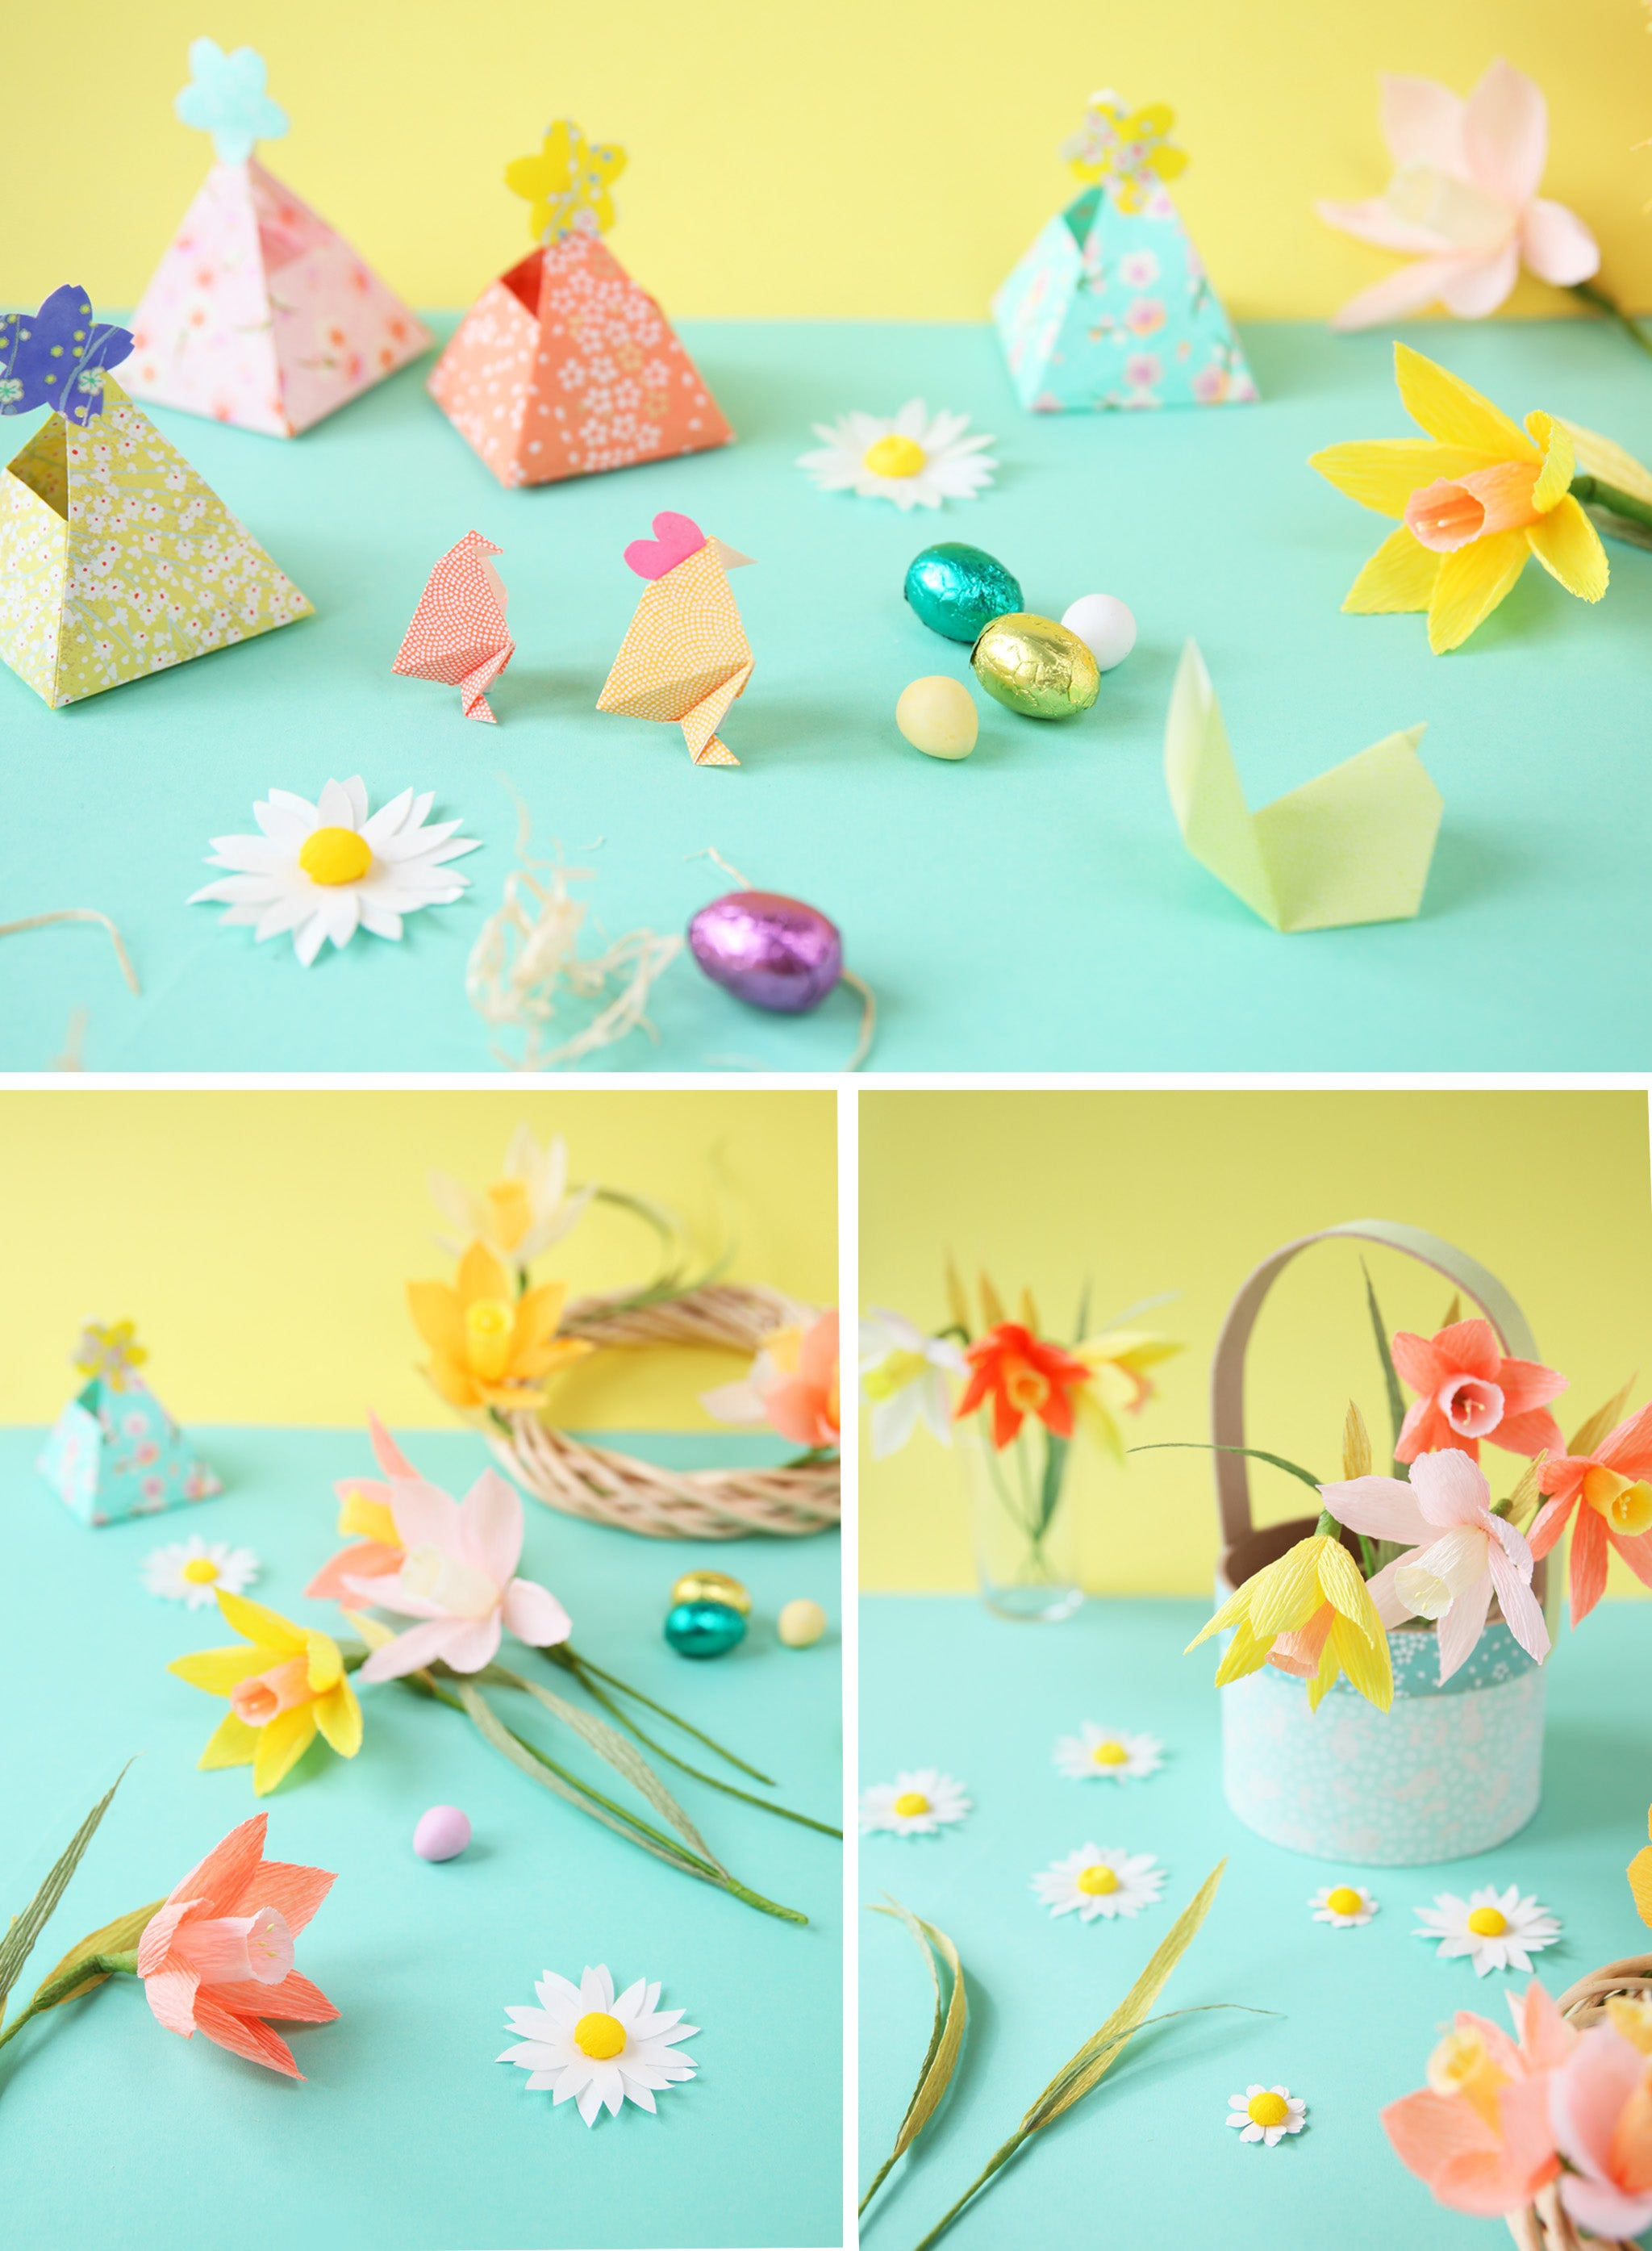 article-blog-tutos-6-diy-paques-ambiance-1